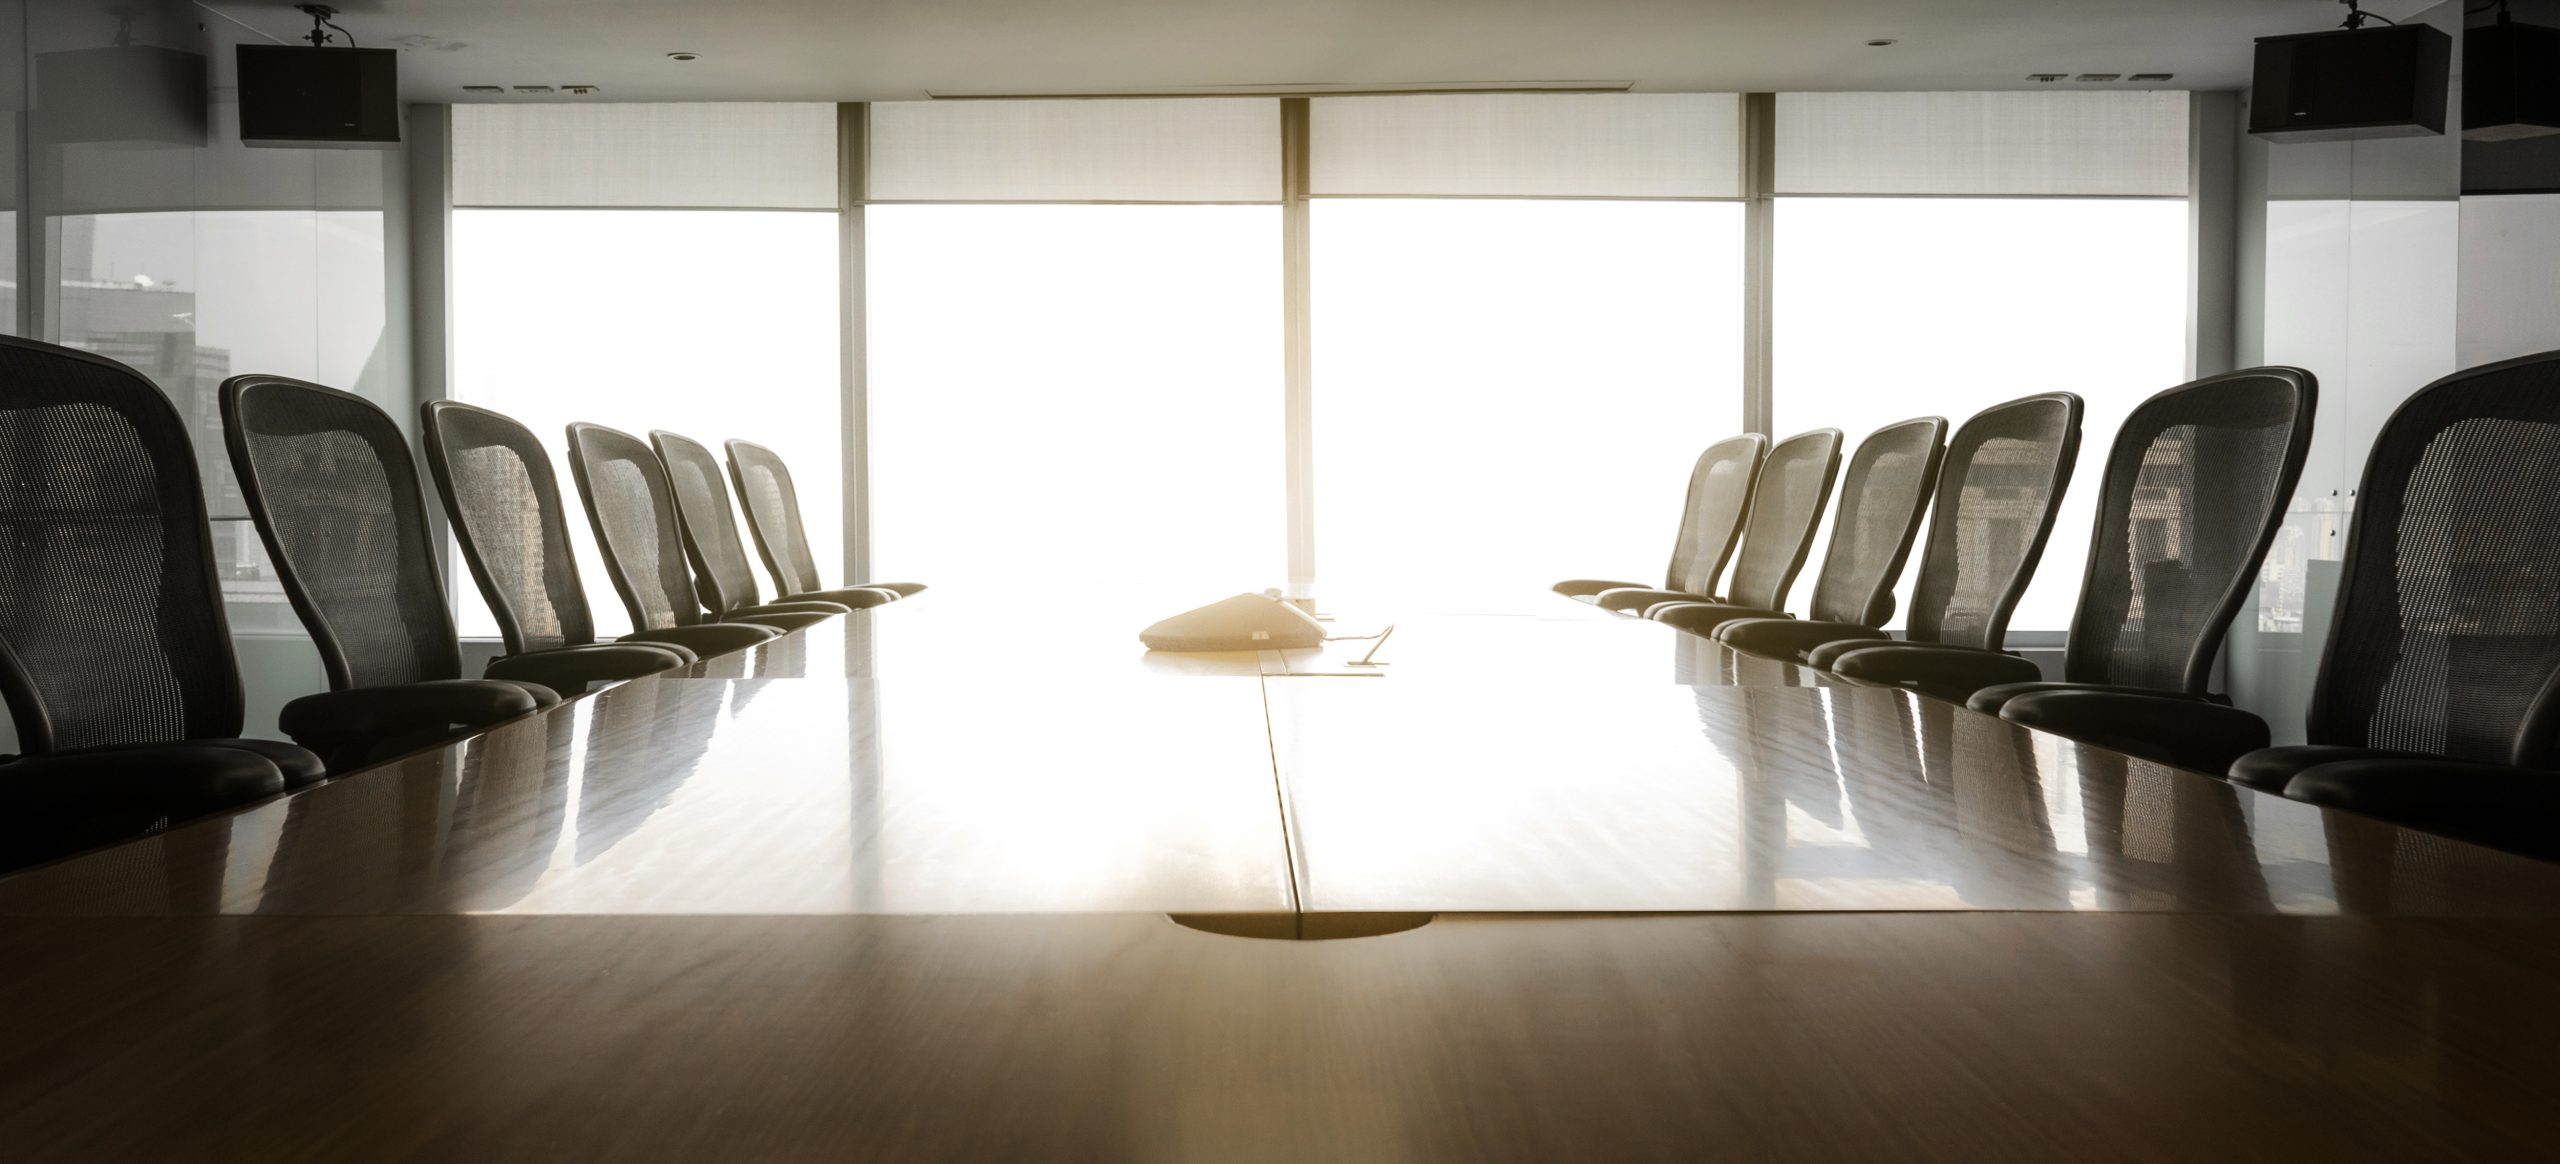 Your Questions Answered: Financial Best Practices For Your Board